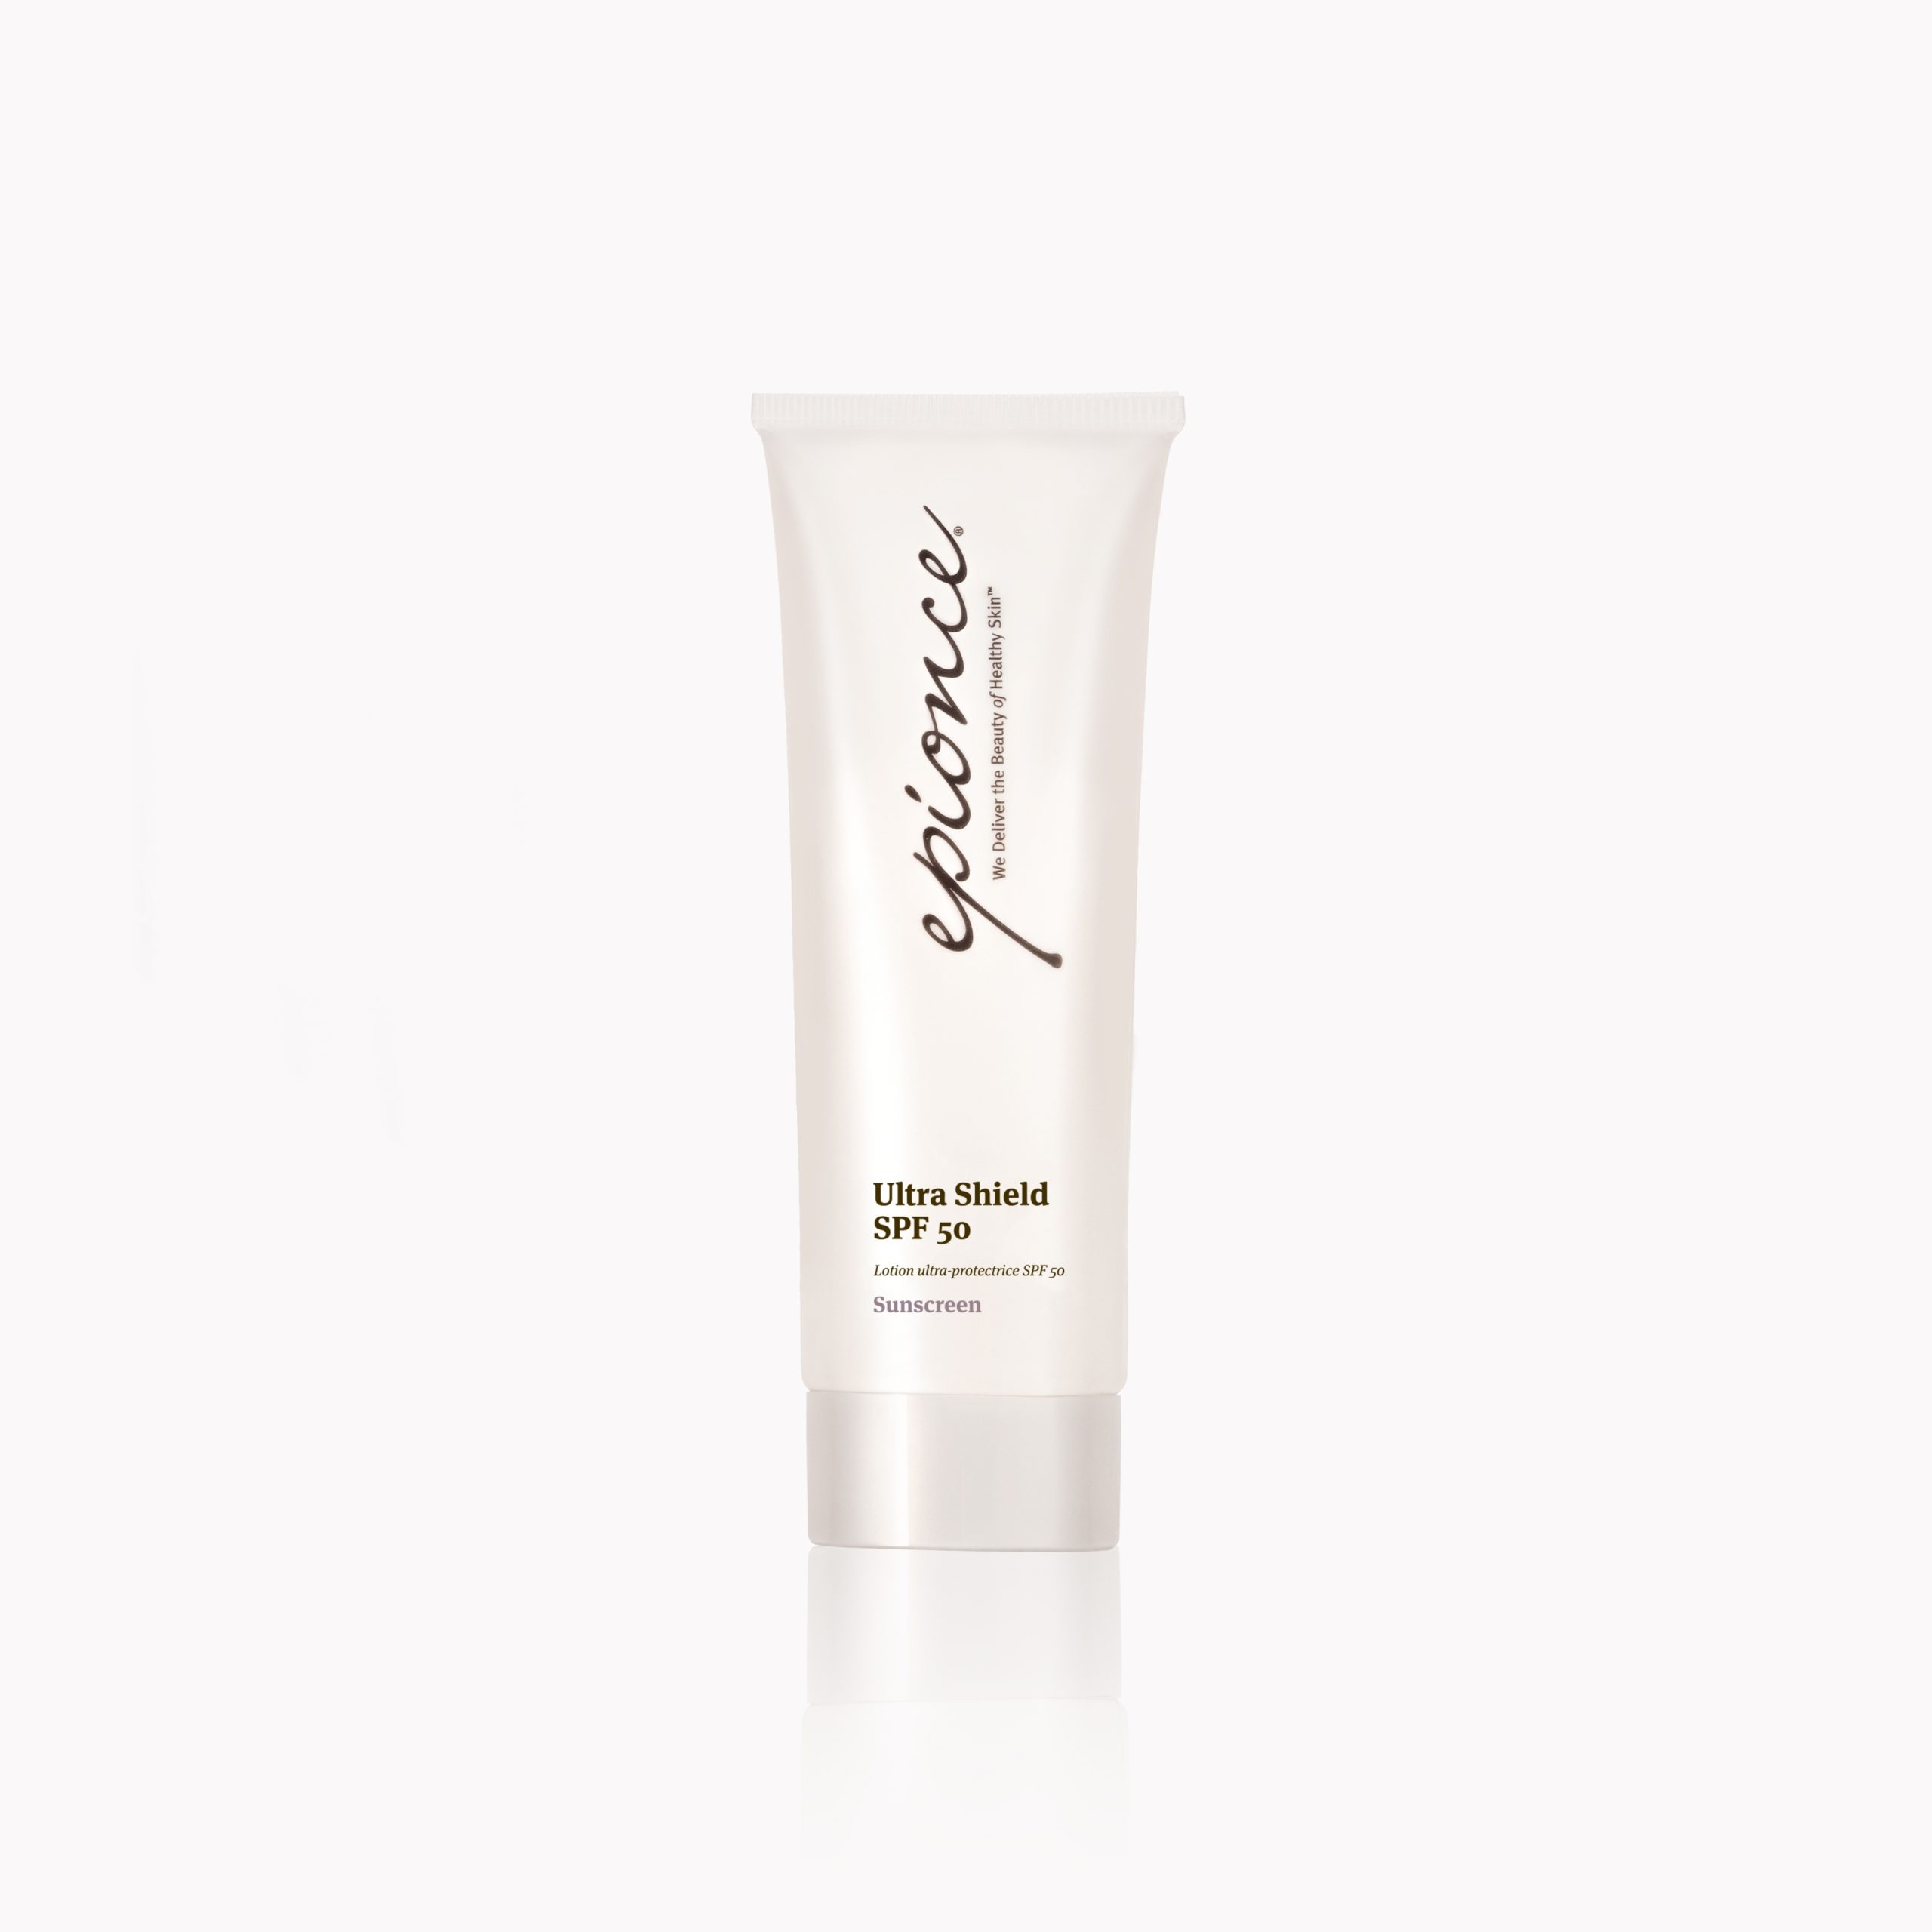 Epionce Ultra Shield Lotion SPF 50 (nontinted) 2.5 fl oz